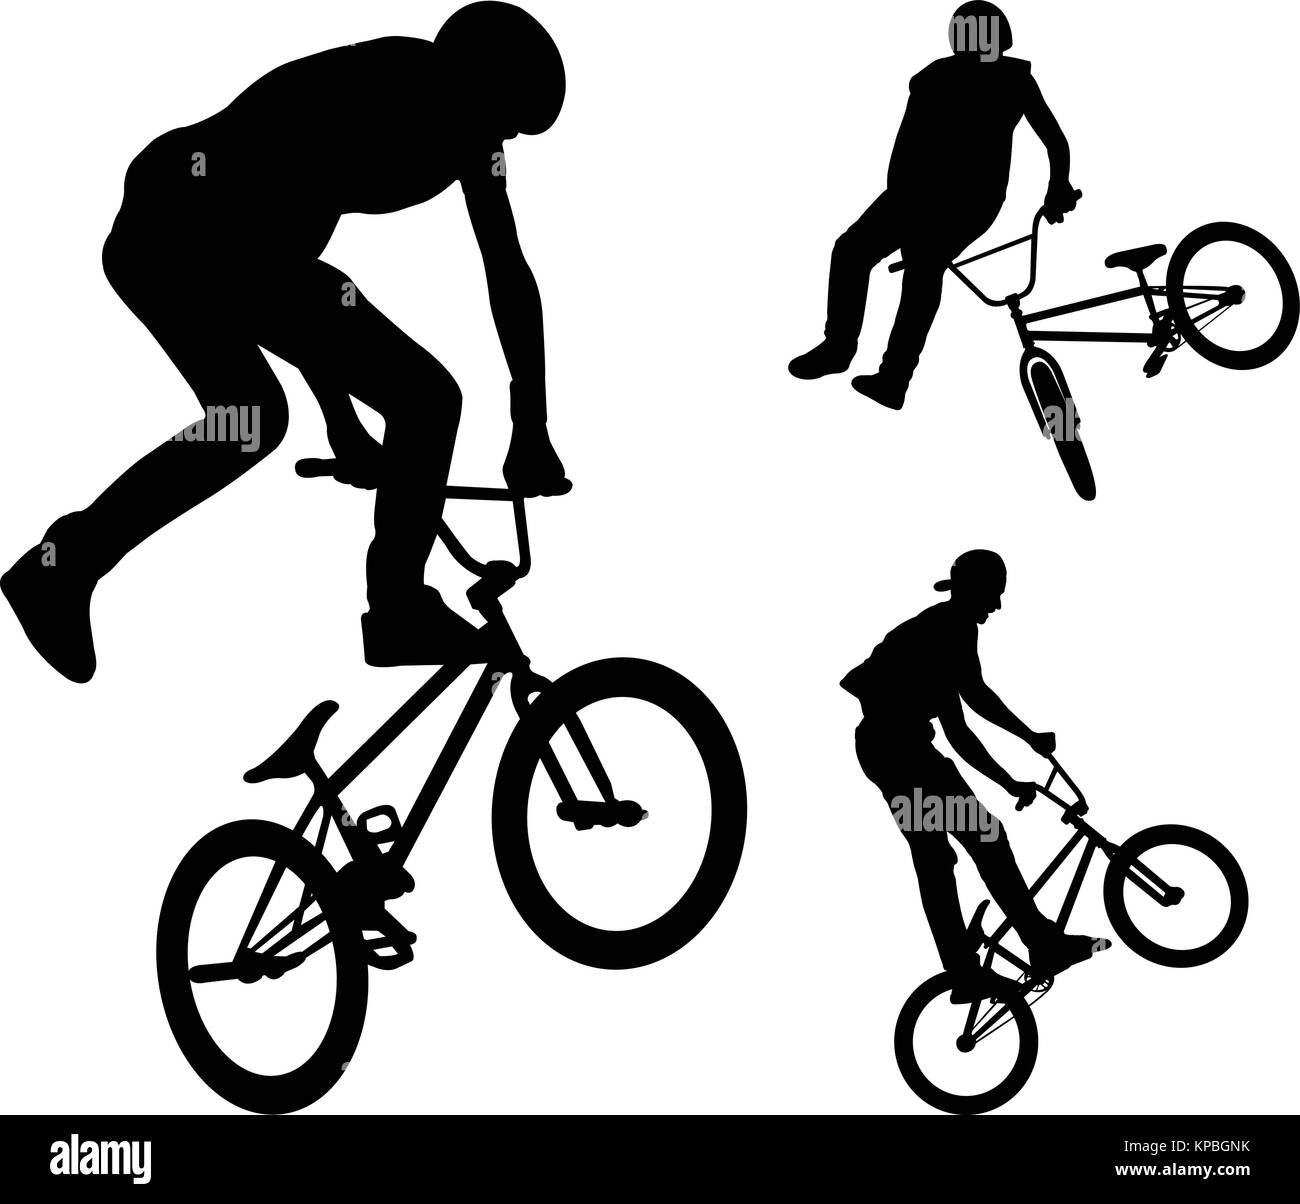 bmx stunt cyclists silhouettes - vector - Stock Vector